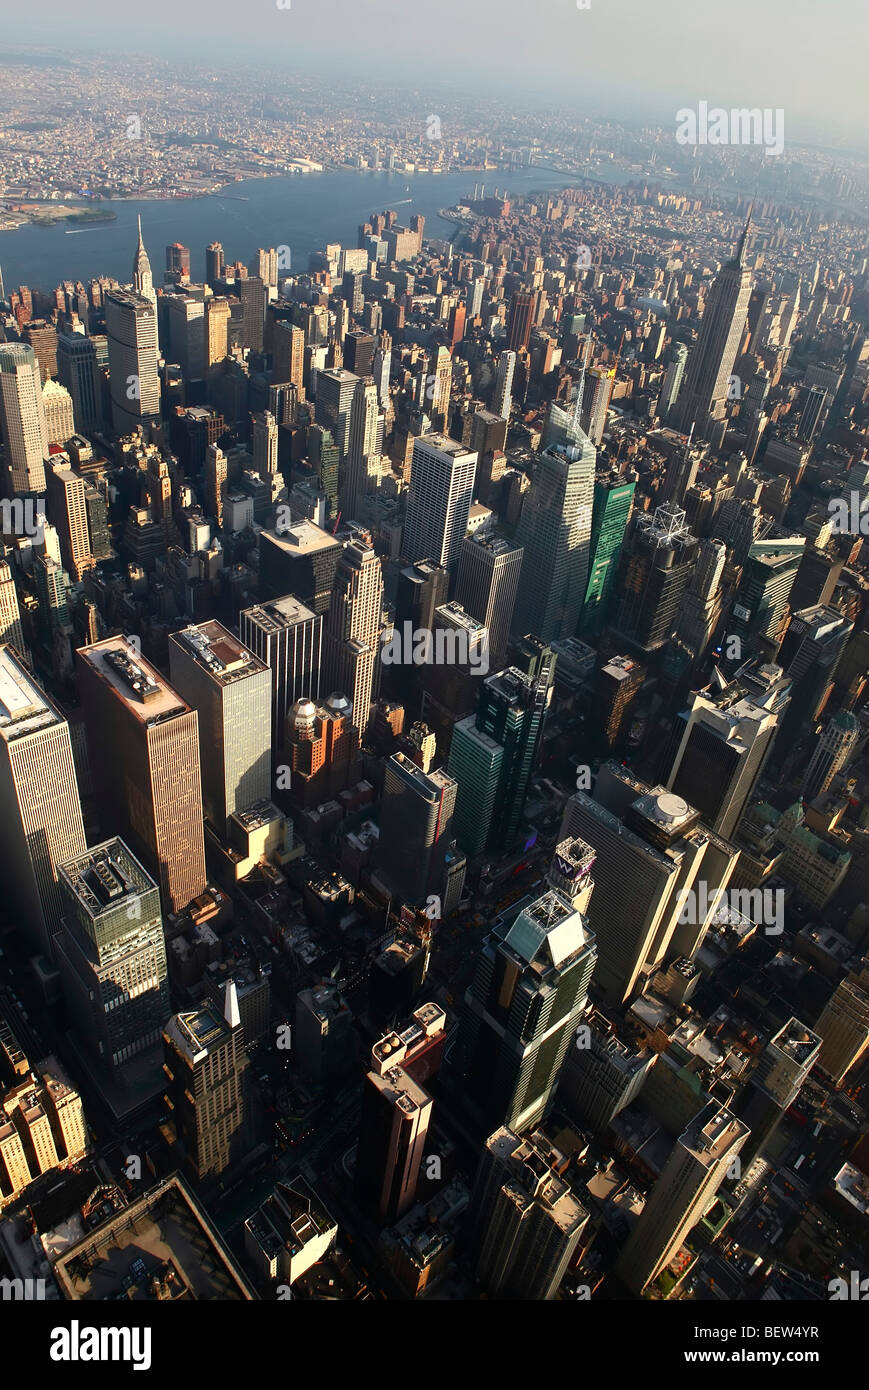 New York City aerial - Stock Image